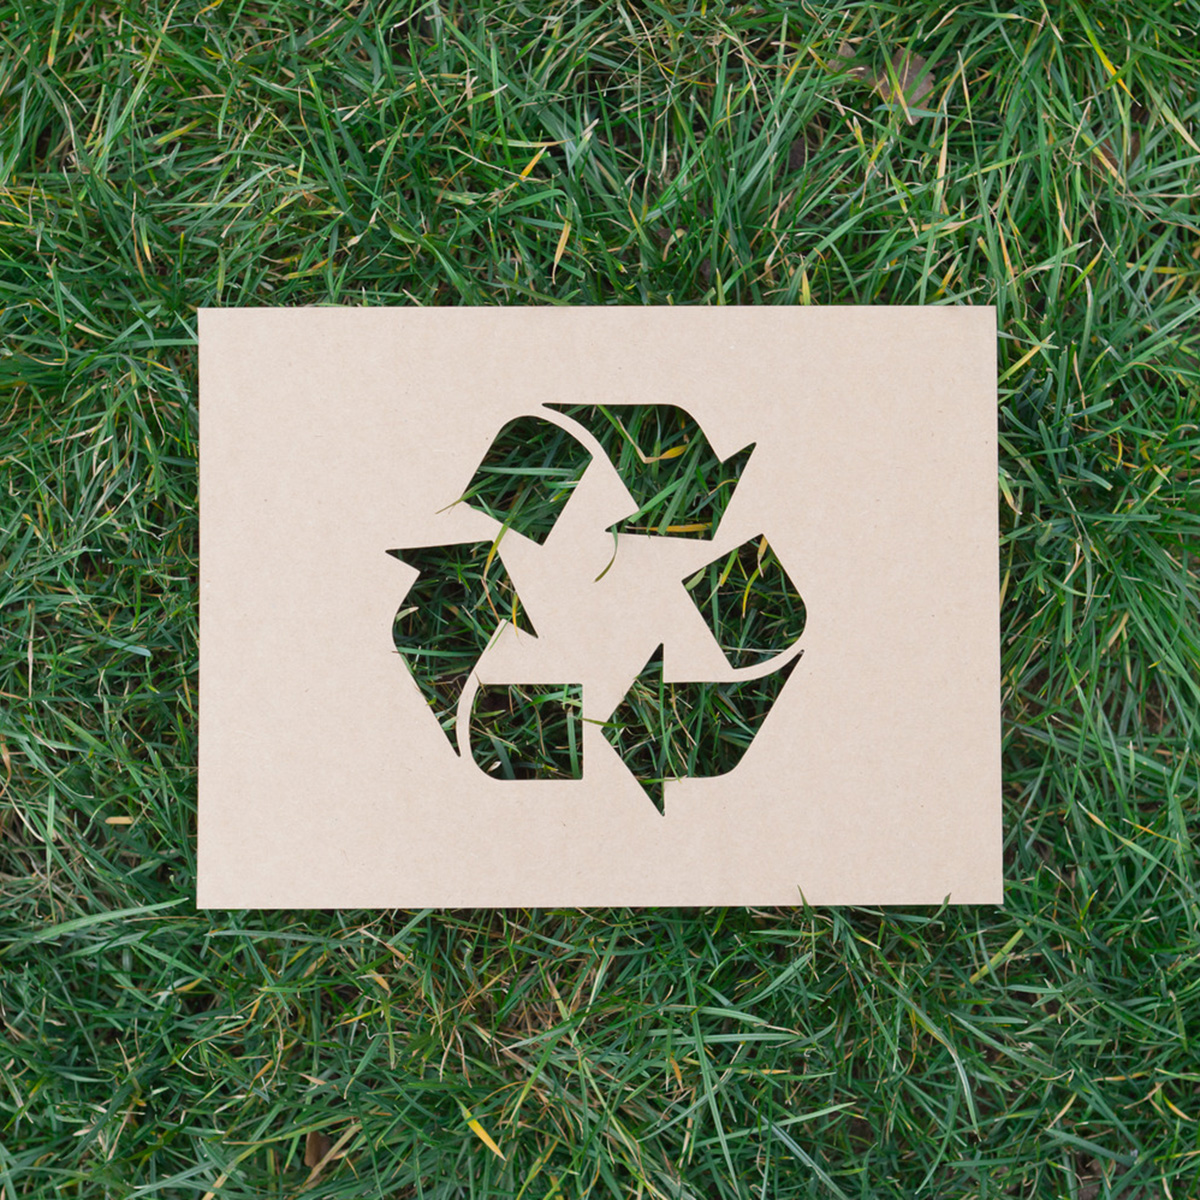 Waste & Recycling of the Newtown Township Public Works Department